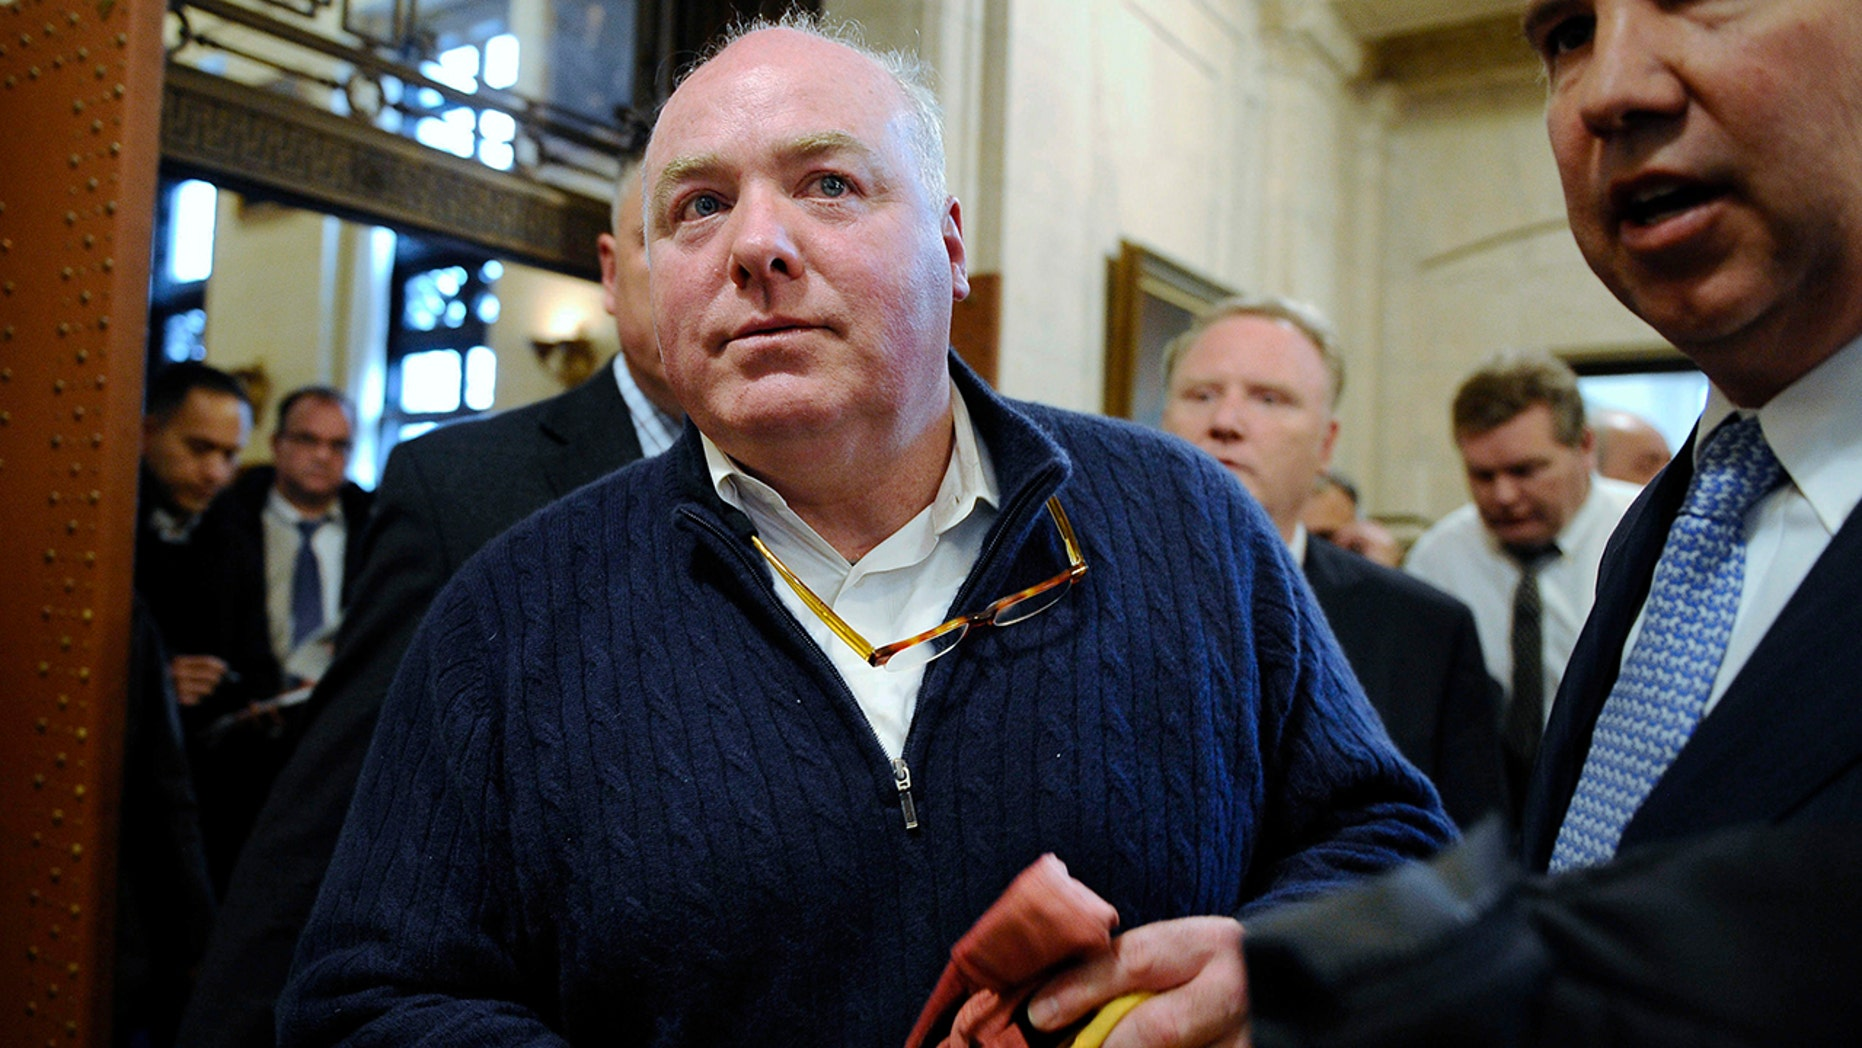 The Connecticut Supreme Court vacated Kennedy cousin Michael Skakel's murder conviction and ordered a new trial in connection with a 1975 killing in wealthy Greenwich, The Associated Press reported.